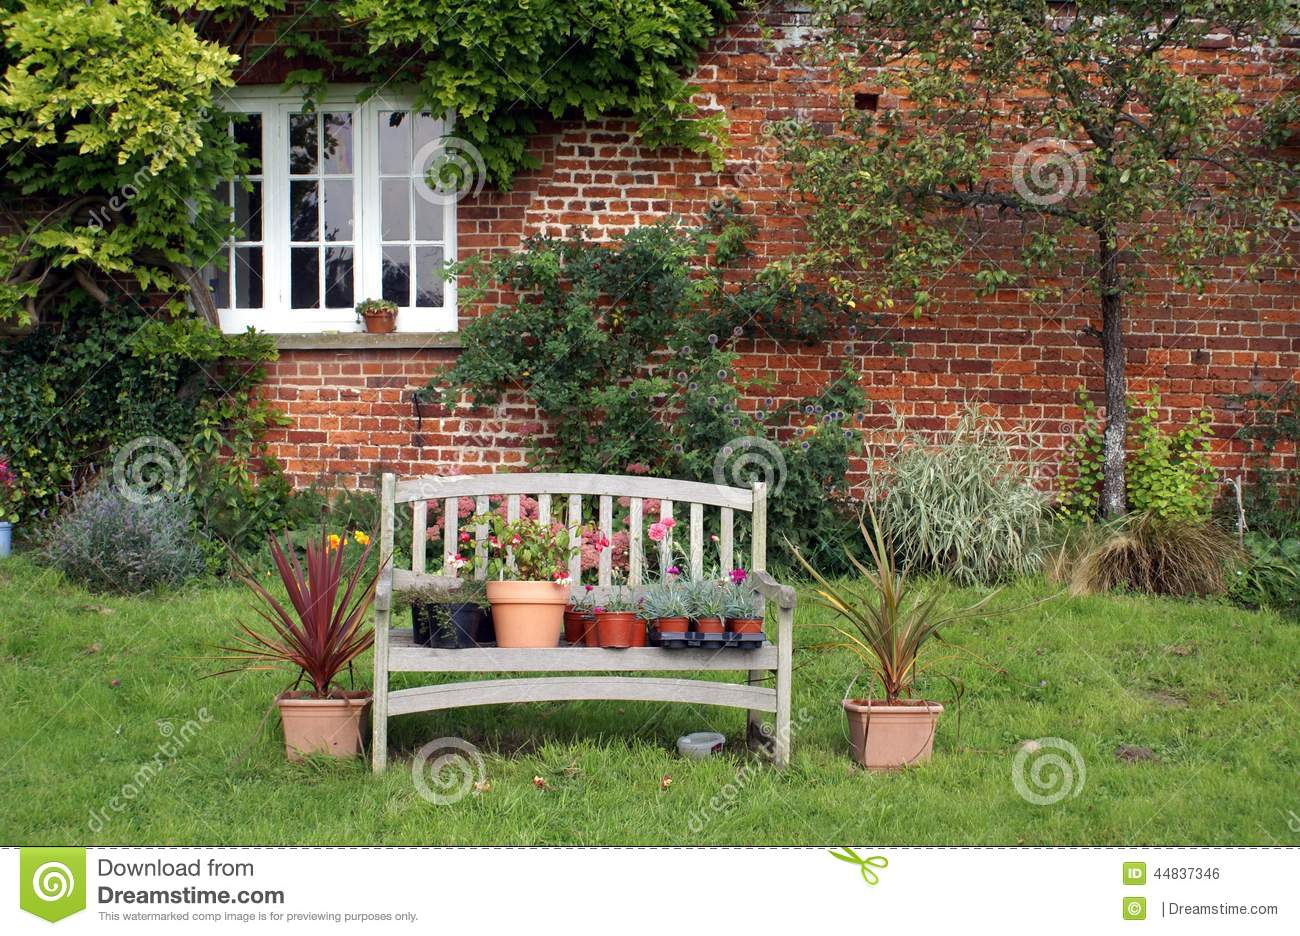 Plants & Flowers In Pots On Wooden Bench Stock Photo ...